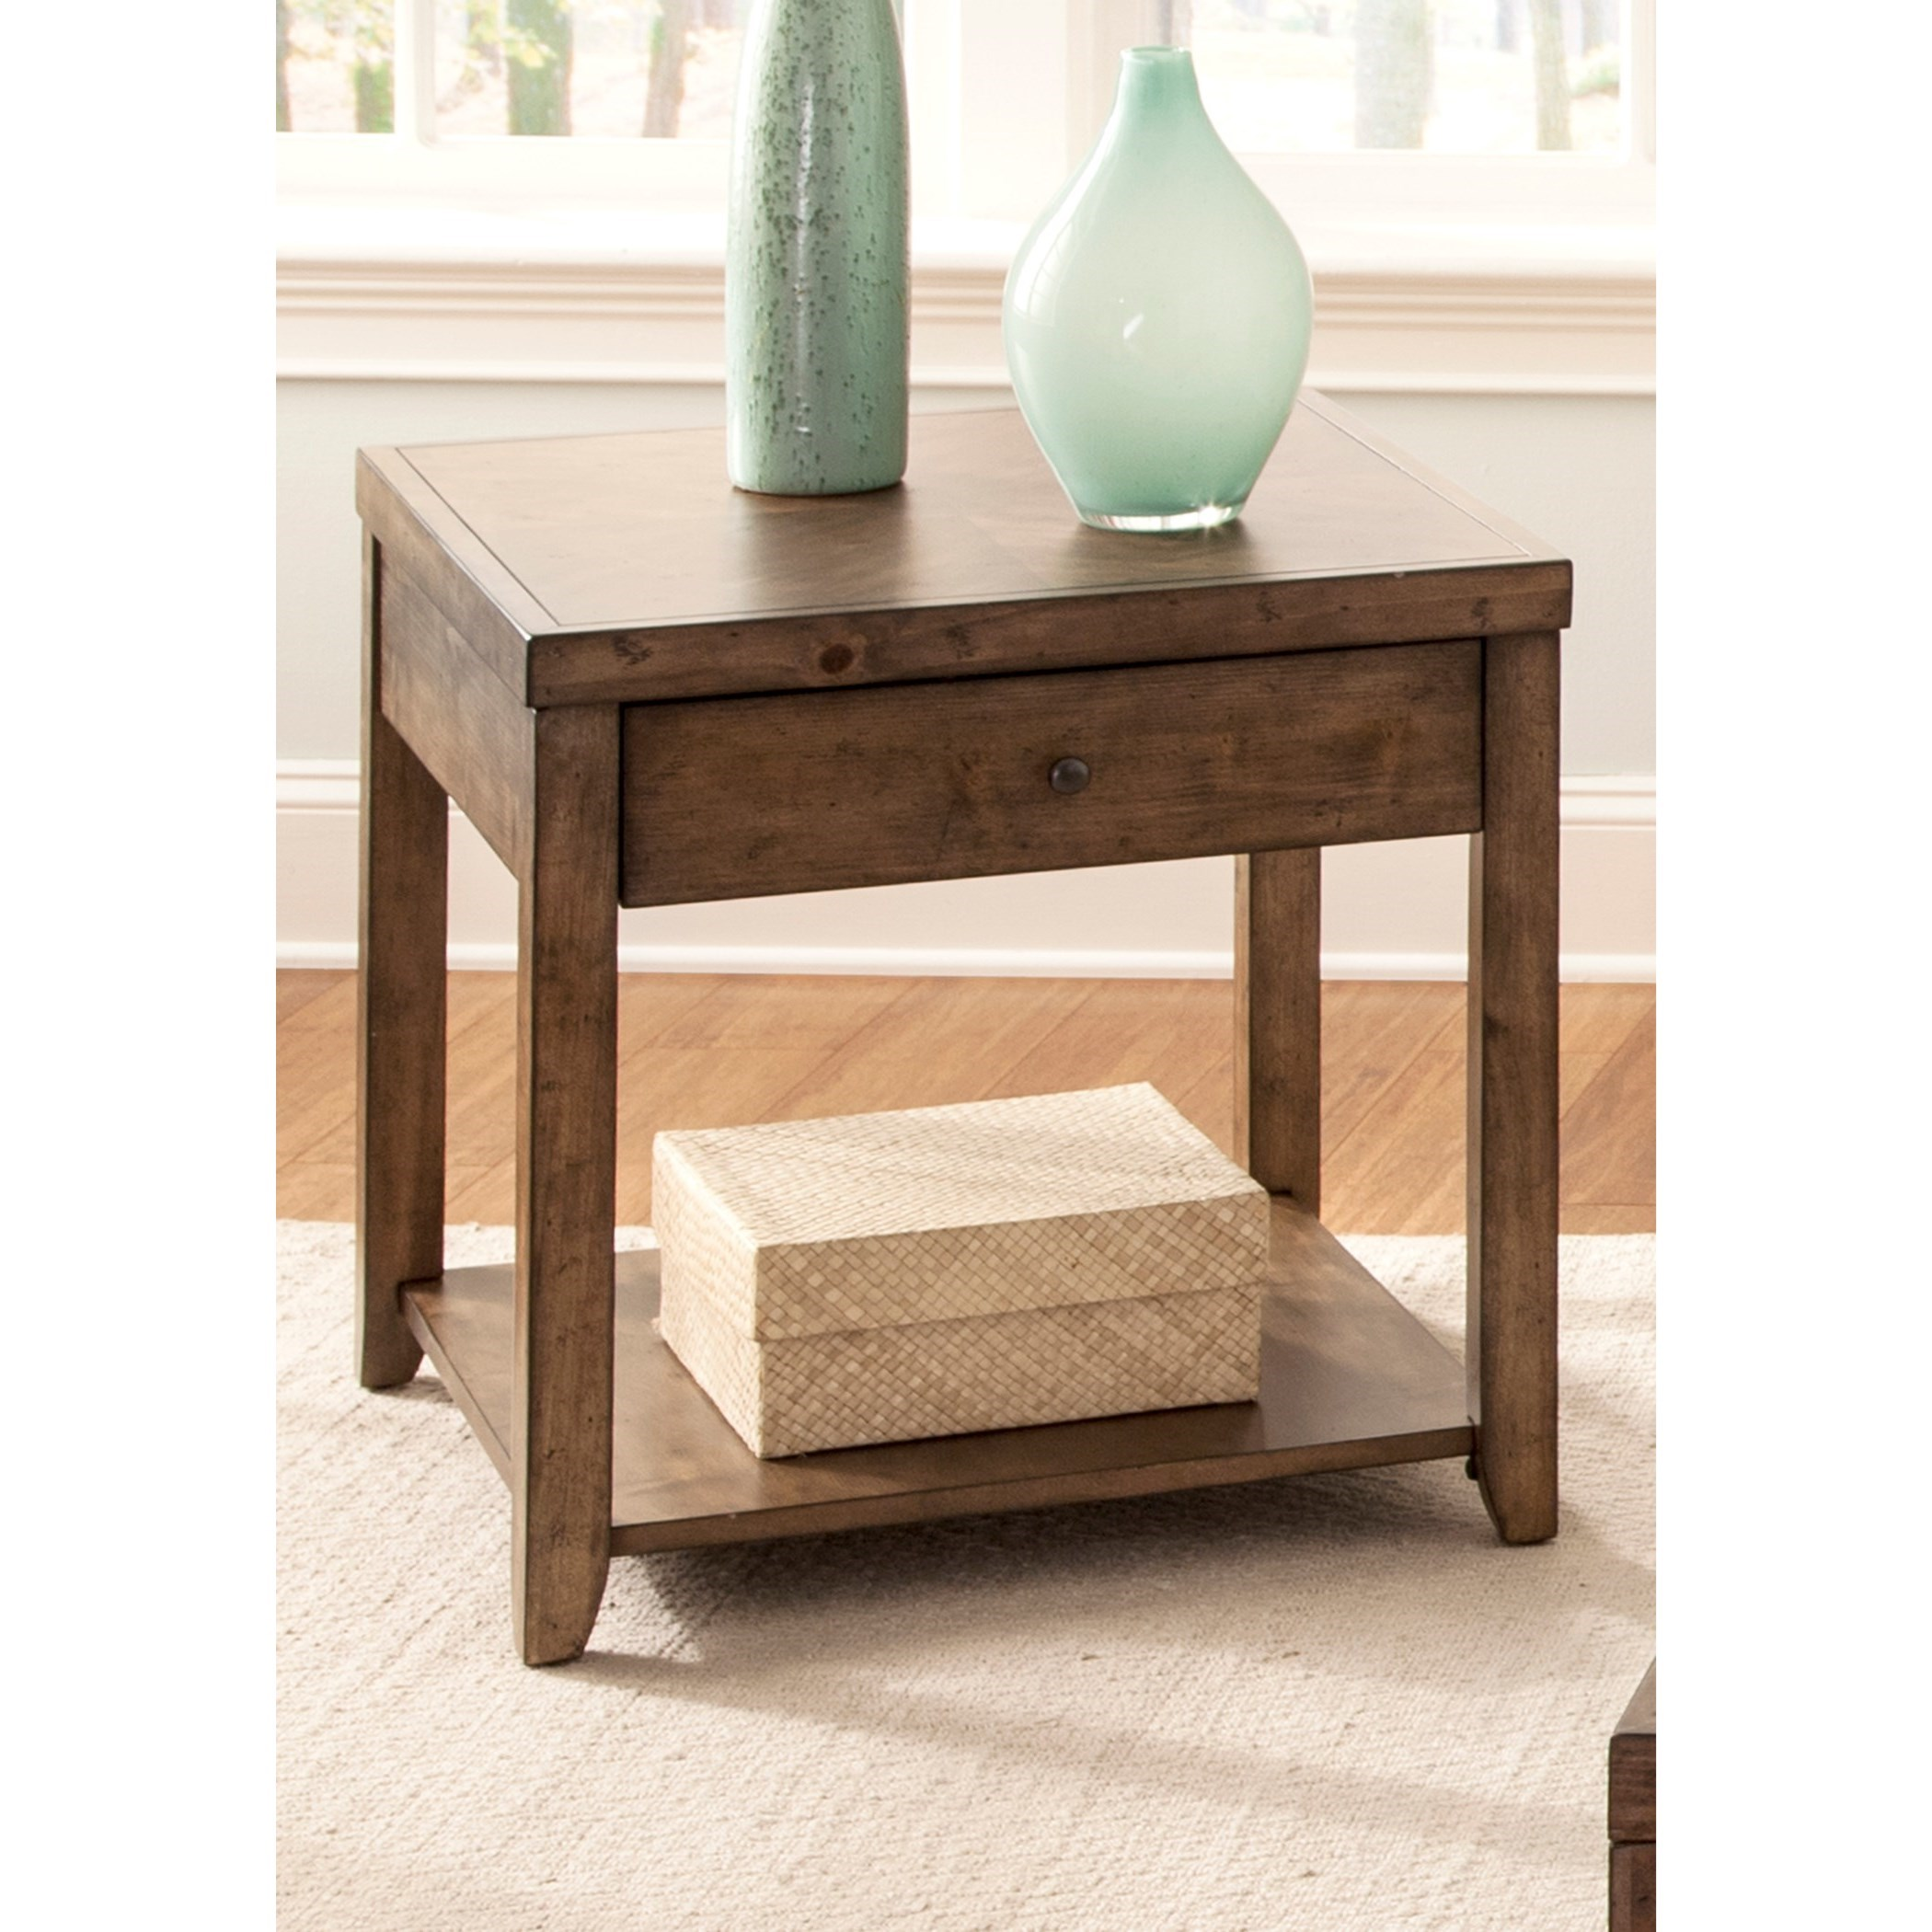 Marley End Table by Libby at Walker's Furniture